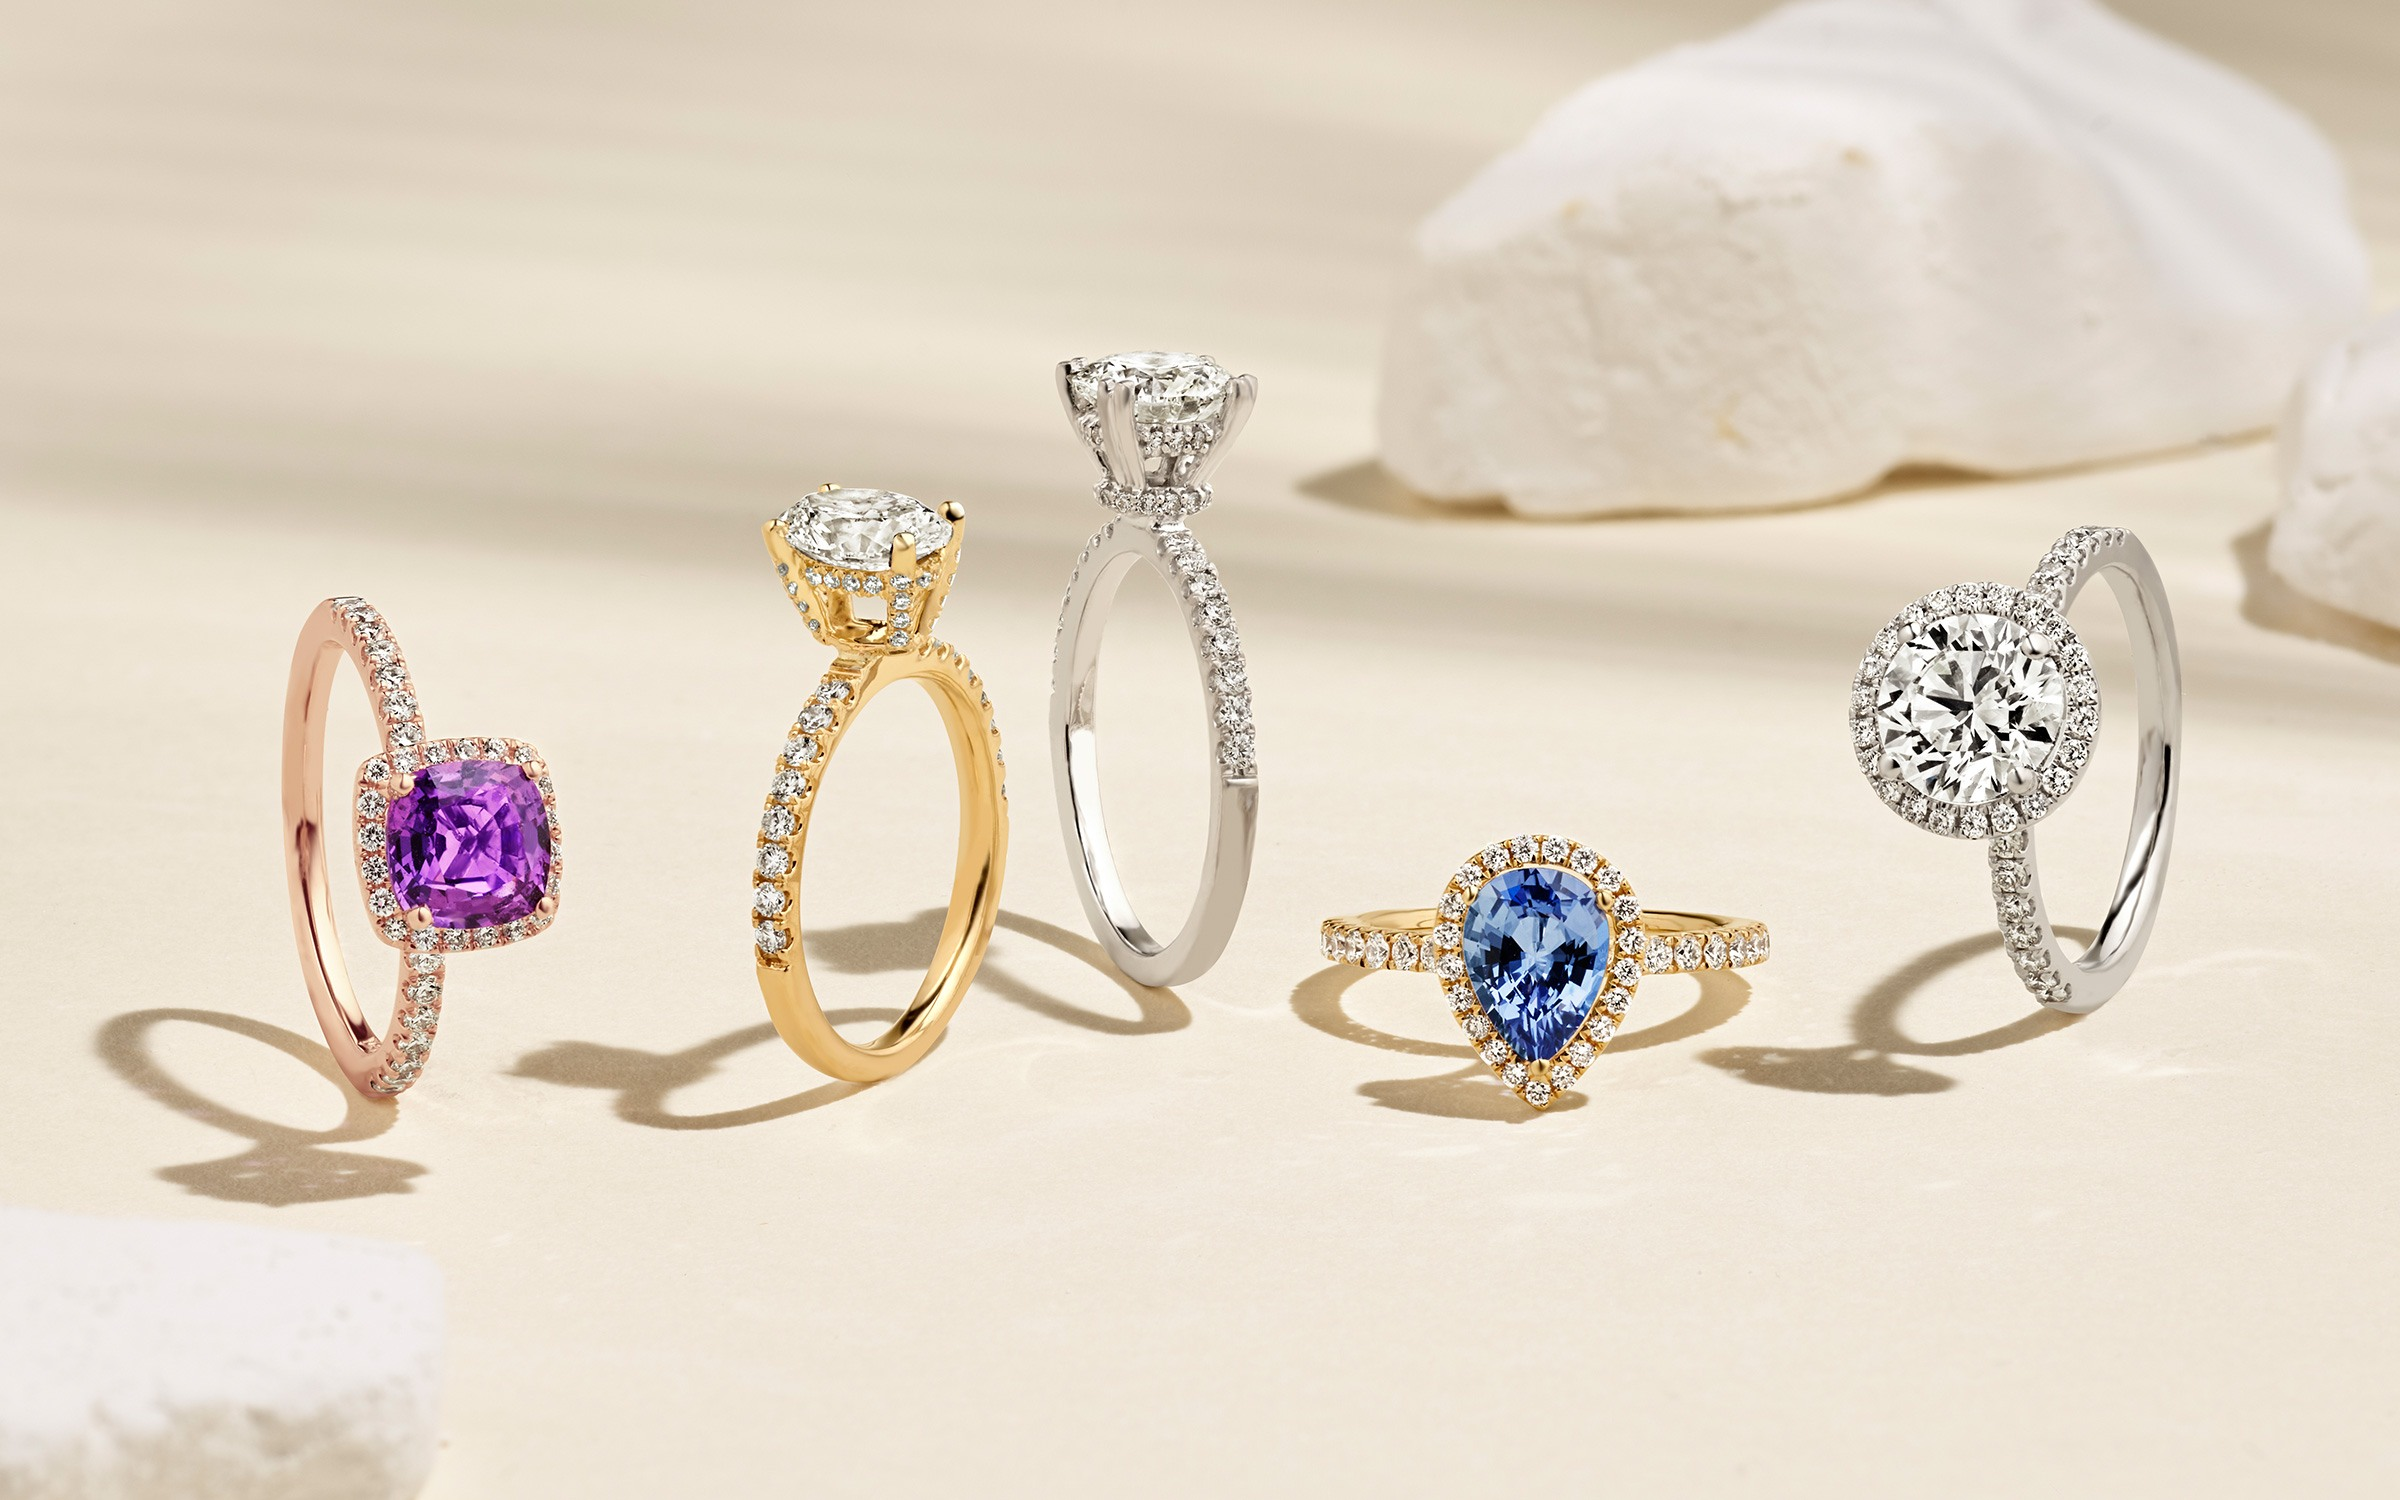 Collection of rings with halos and hidden halos.